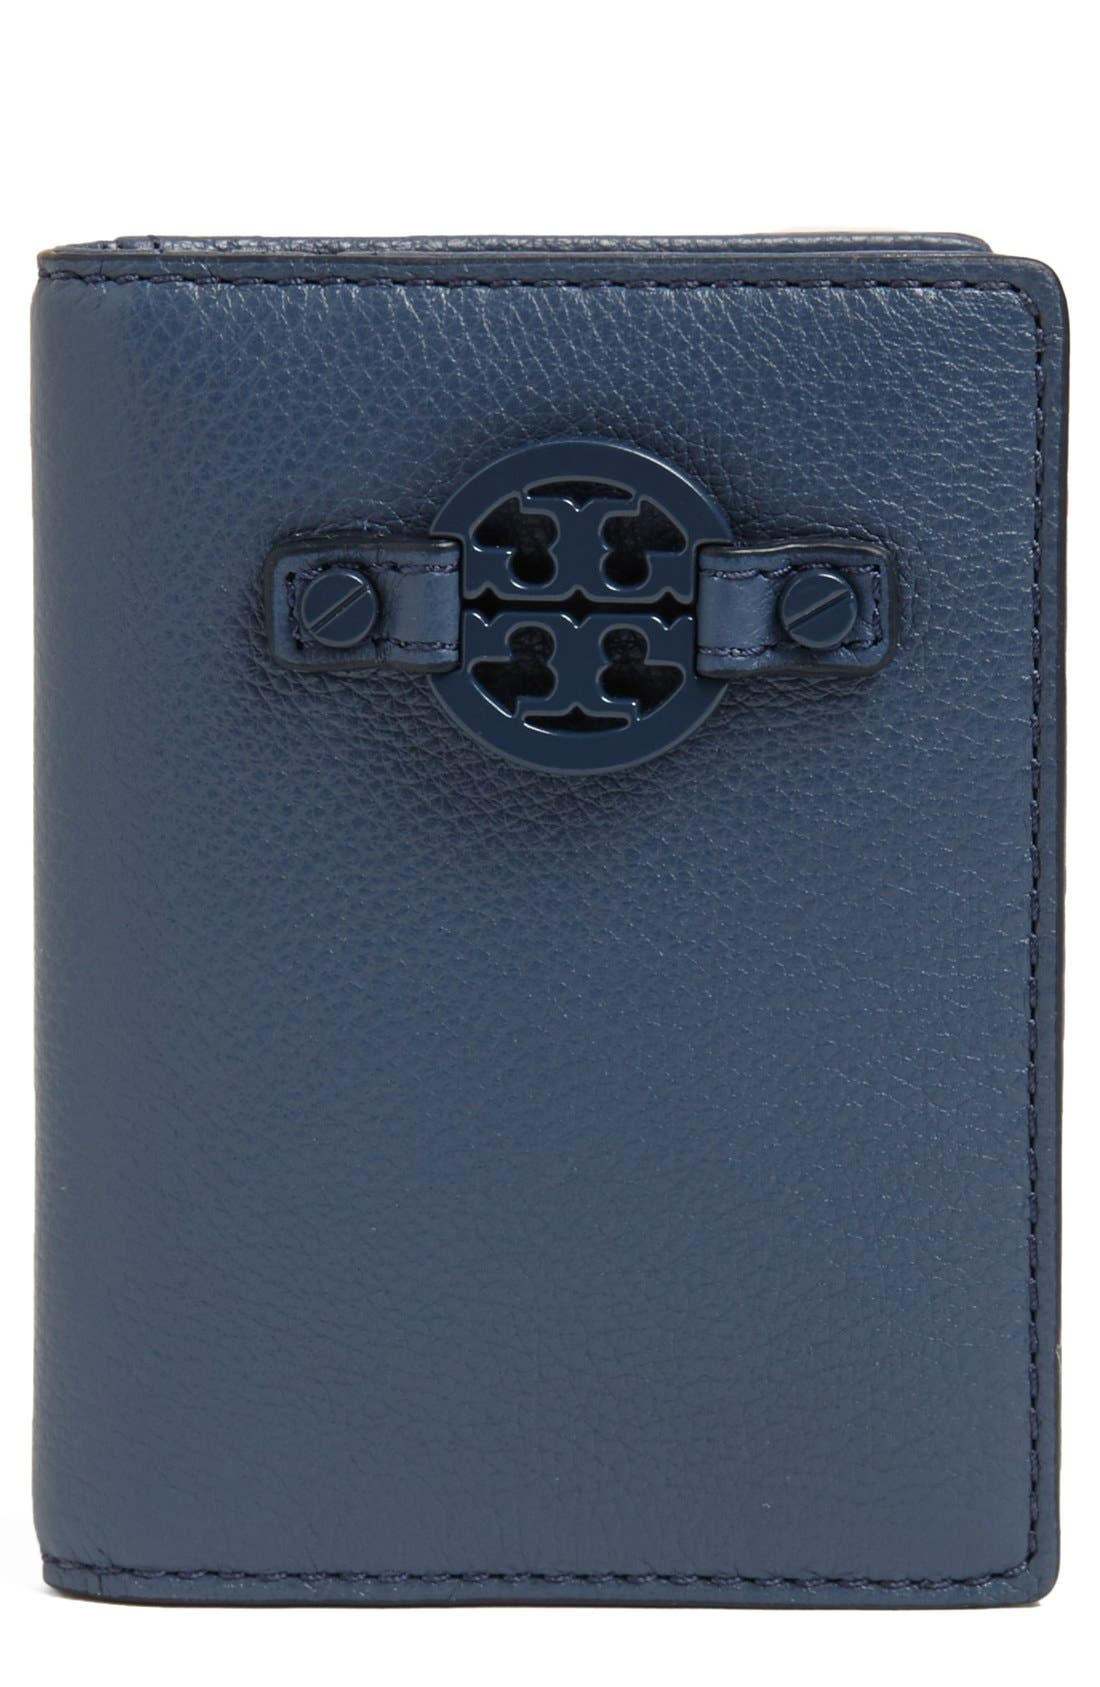 Main Image - Tory Burch 'Amanda' Leather Card Case